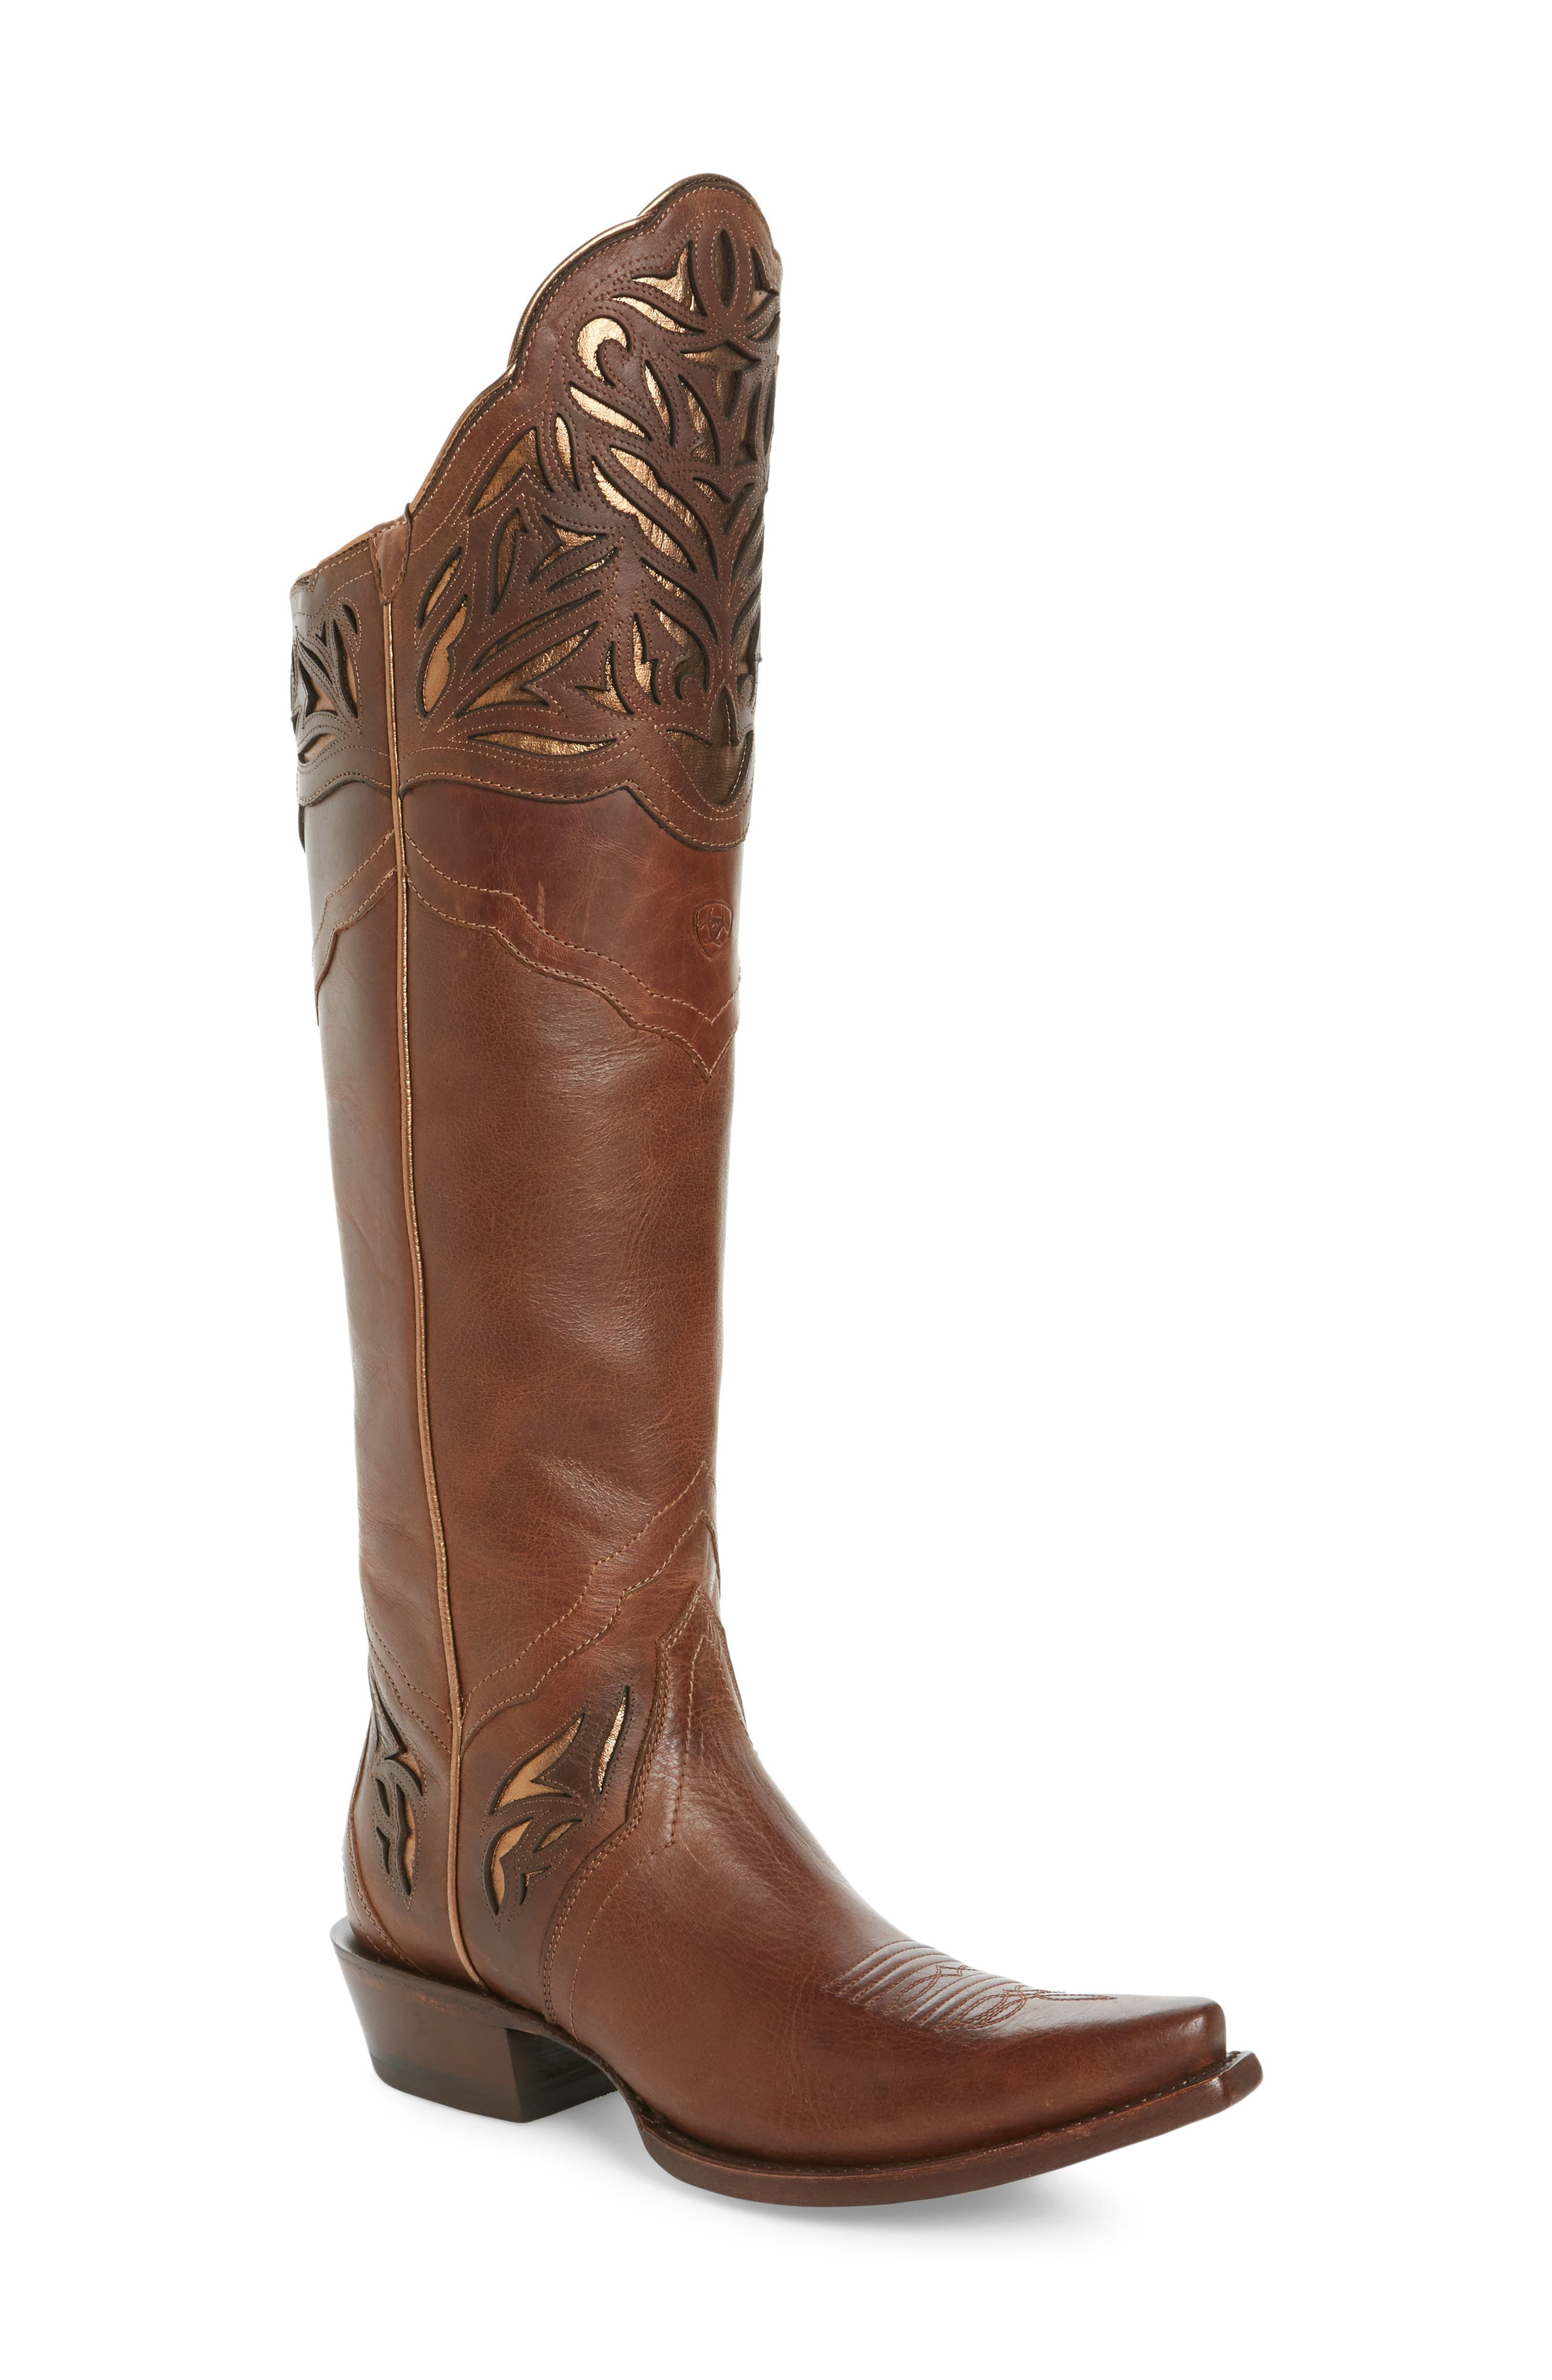 Chaparral Over the Knee Western Boot,                         Main,                         color, 200